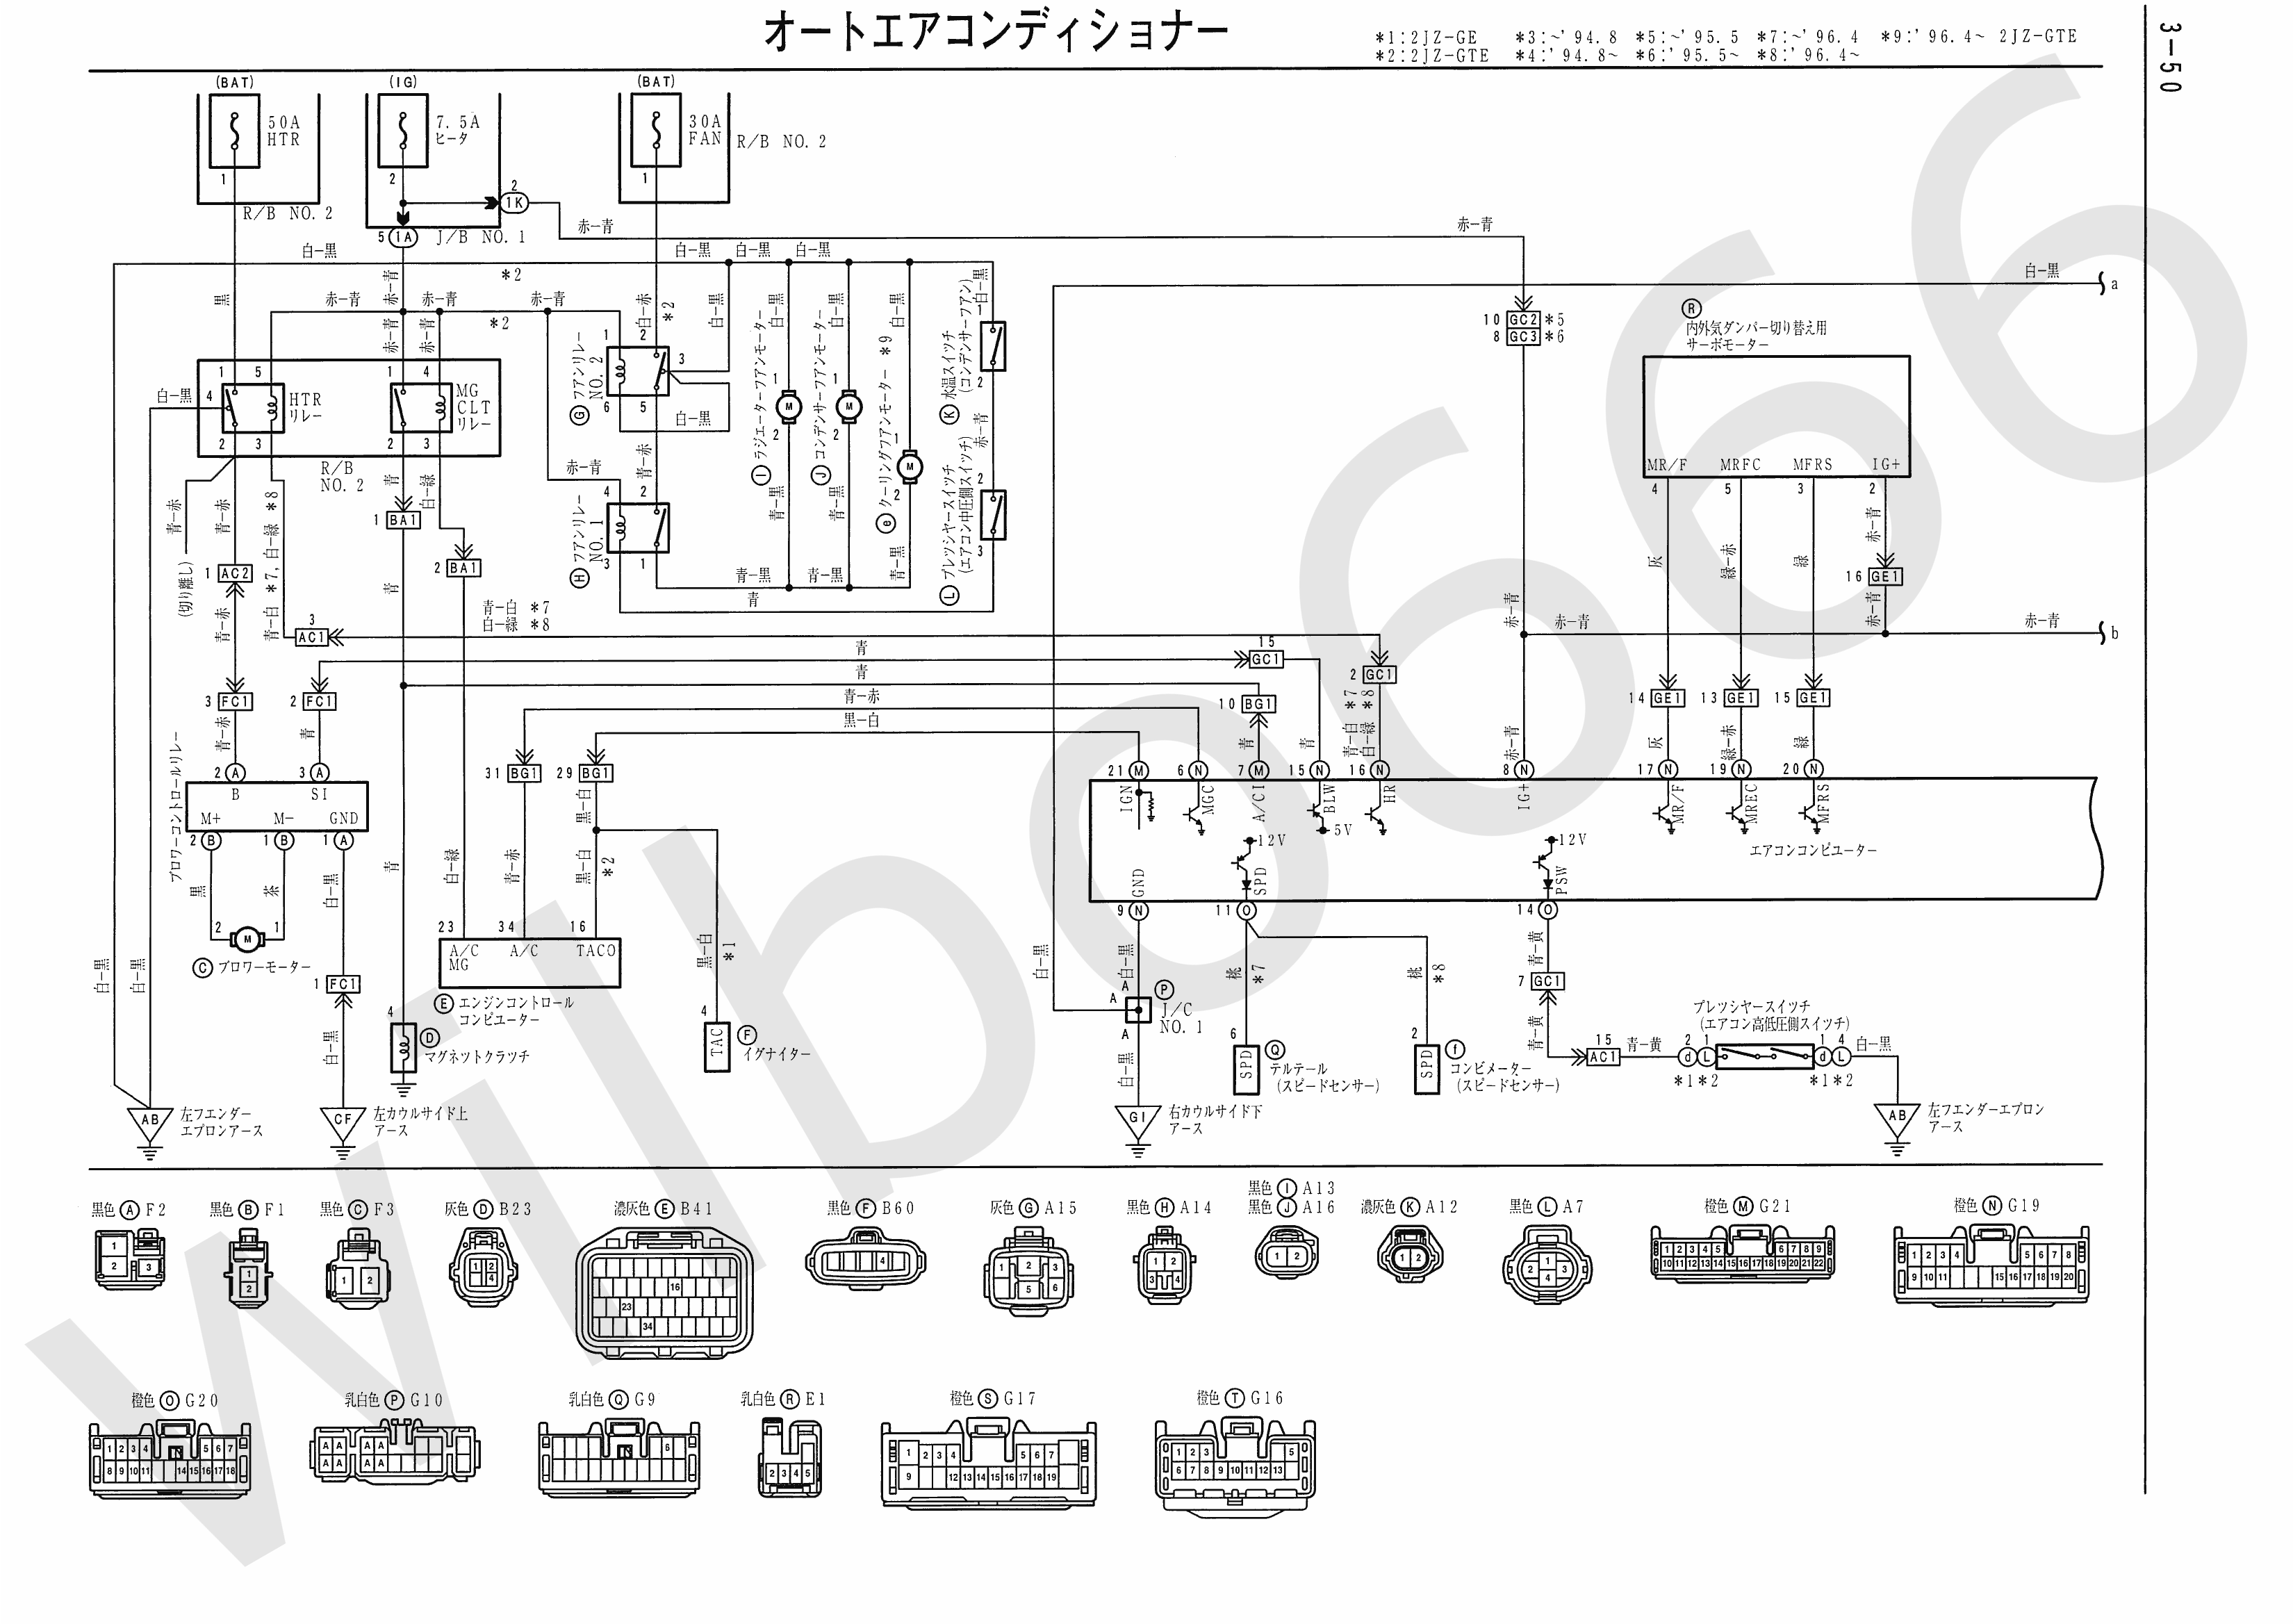 Aiwa Stereo Repair Wiring Diagram And Engine Radio Car Audio Sets Together With Warn Remote Light Switch Additionally 00001